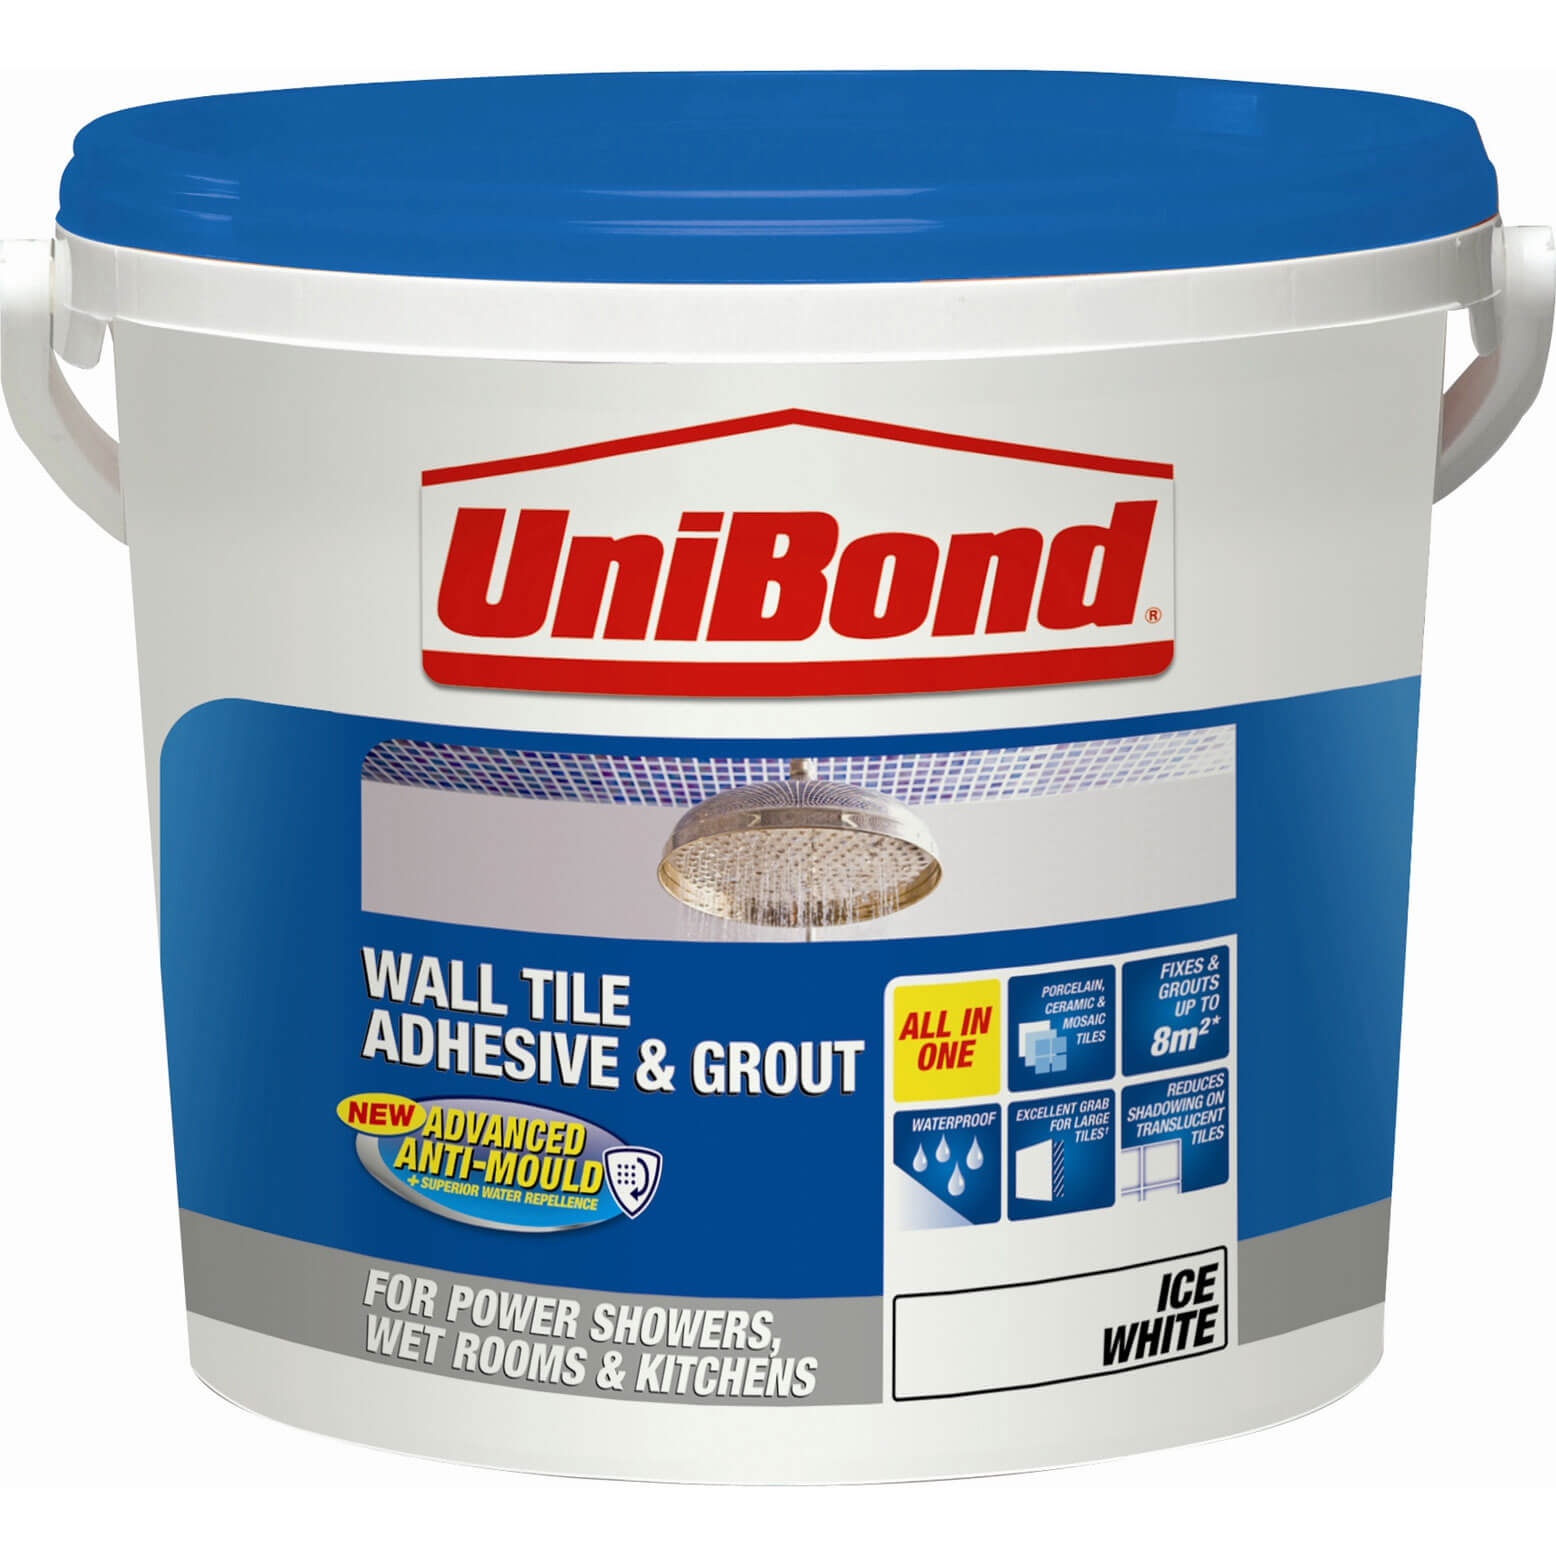 Porcelain floor tile adhesive and grout